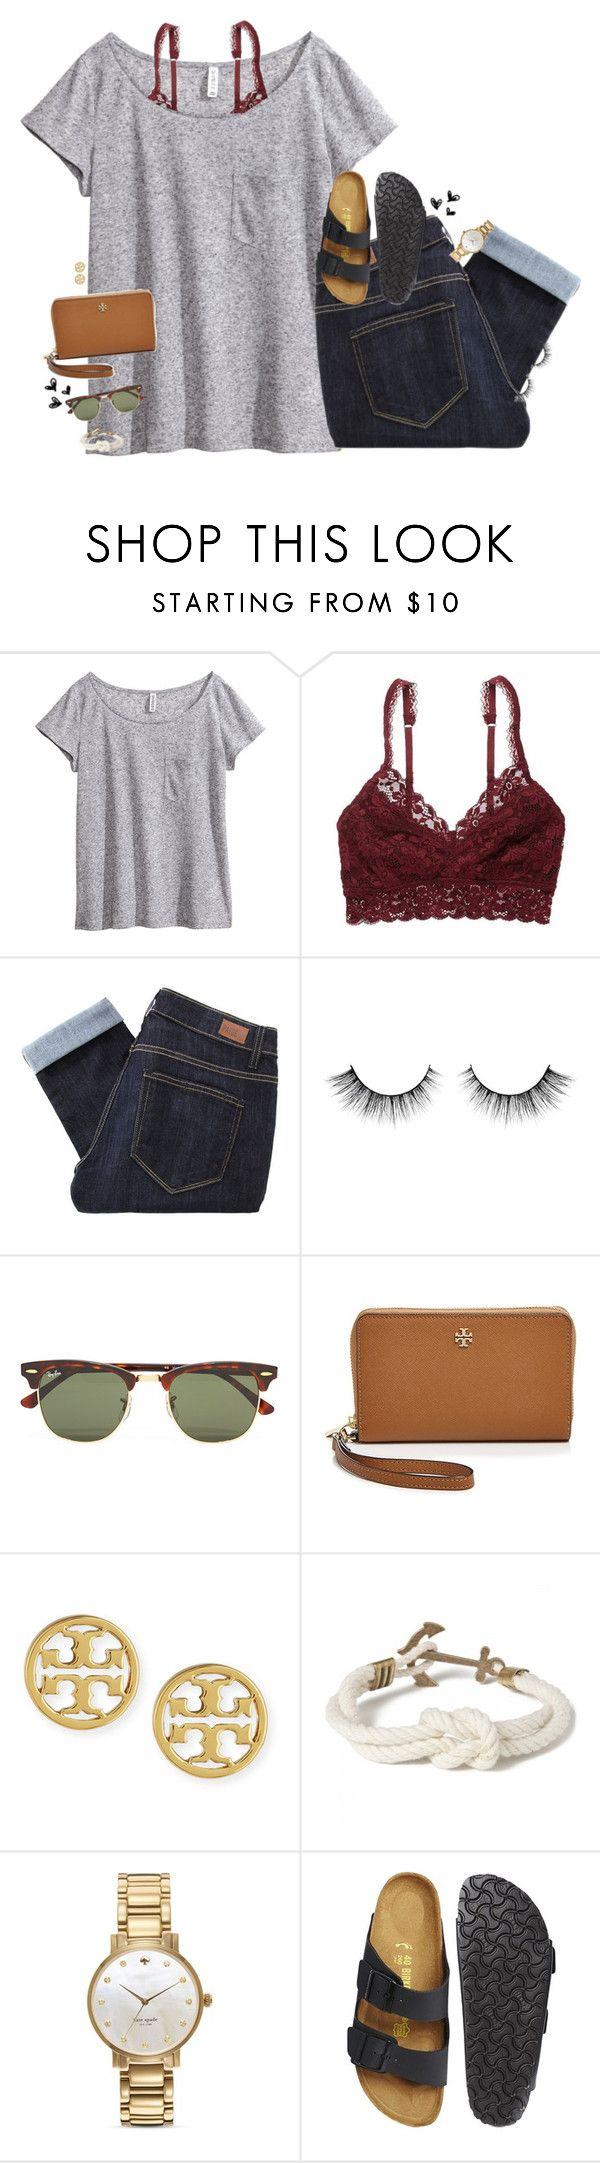 """""""My birthday is this week!!"""" by smbprep ❤ liked on Polyvore featuring H&M, American Eagle Outfitters, Paige Denim, Ray-Ban, Tory Burch, Kiel James Patrick, Kate Spade and Birkenstock"""